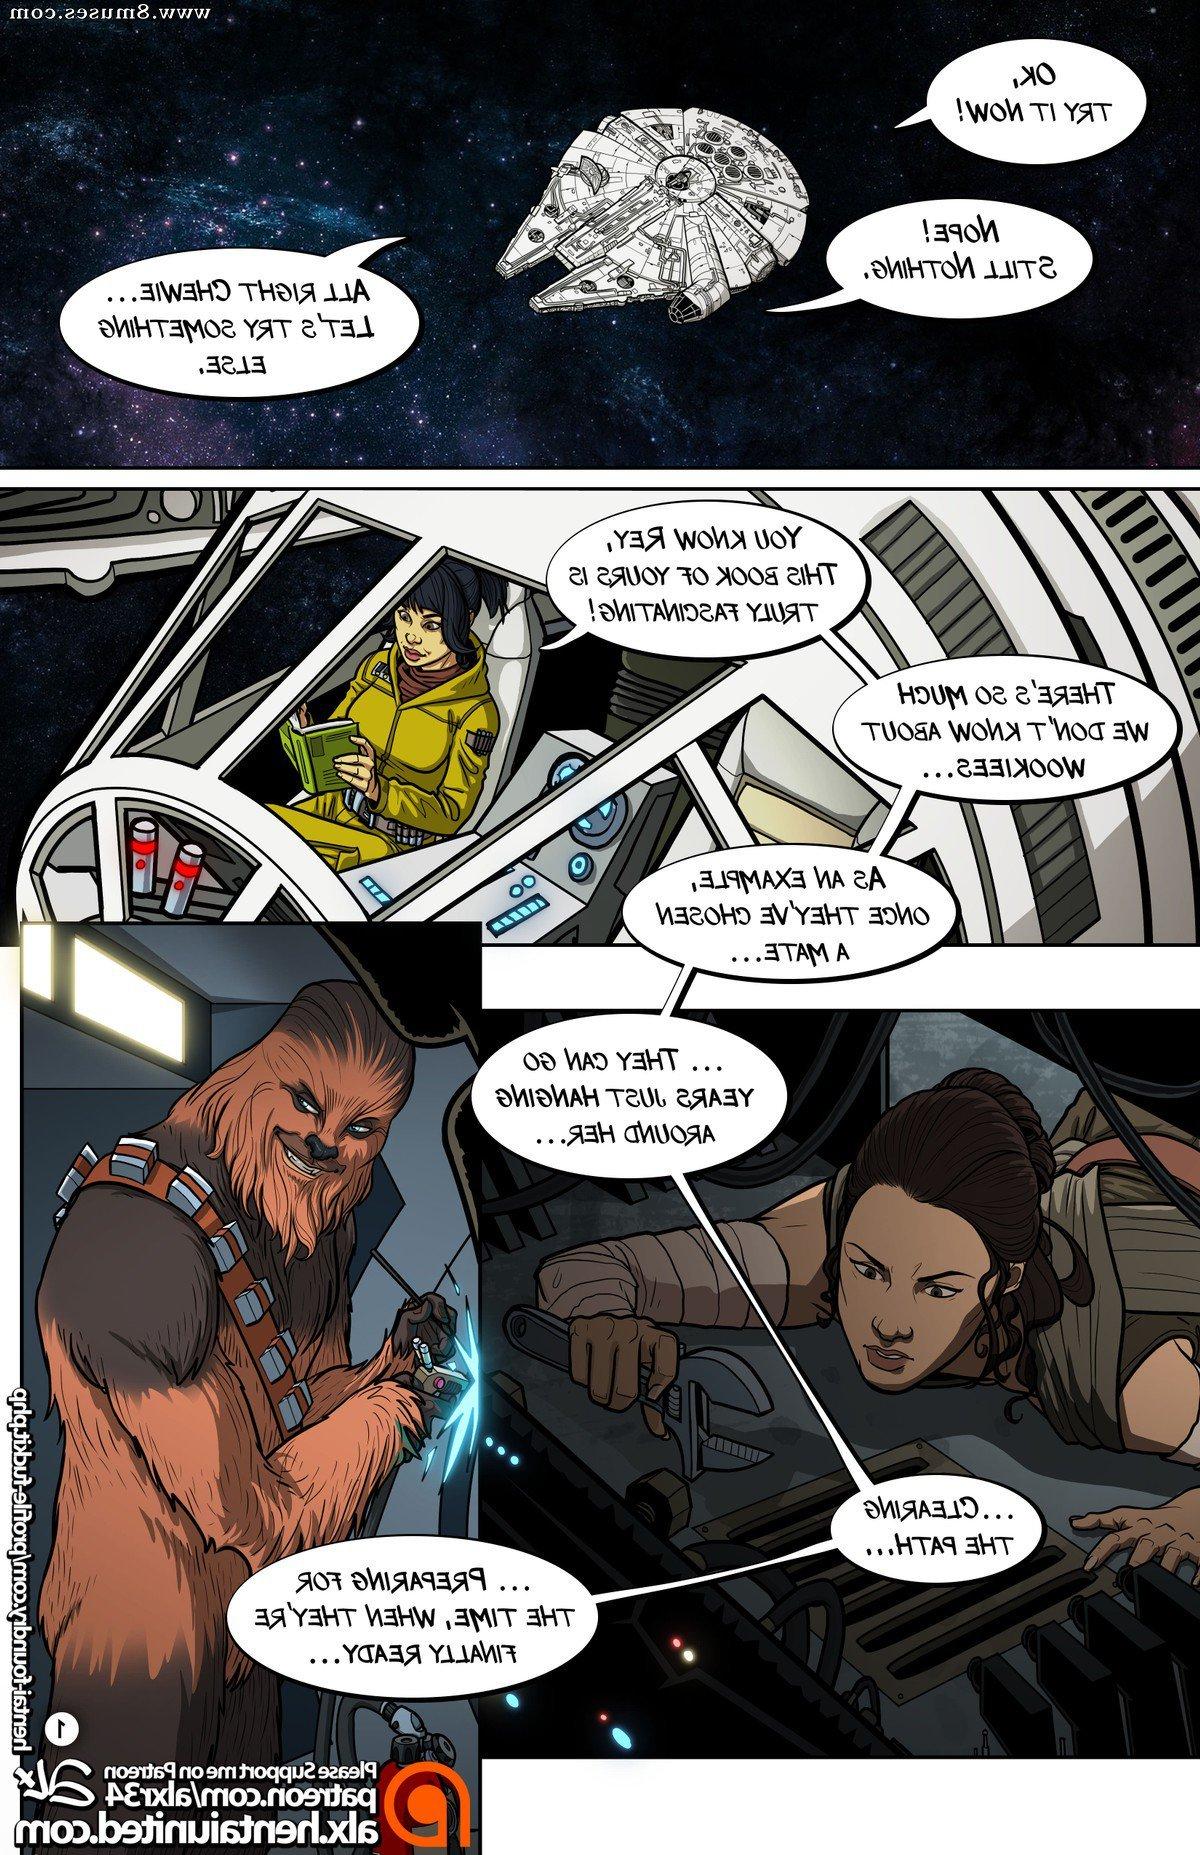 Fuckit-Alx-Comics/A-Complete-Guide-to-Wookie-Sex/Issue-1 A_Complete_Guide_to_Wookie_Sex_-_Issue_1_2.jpg